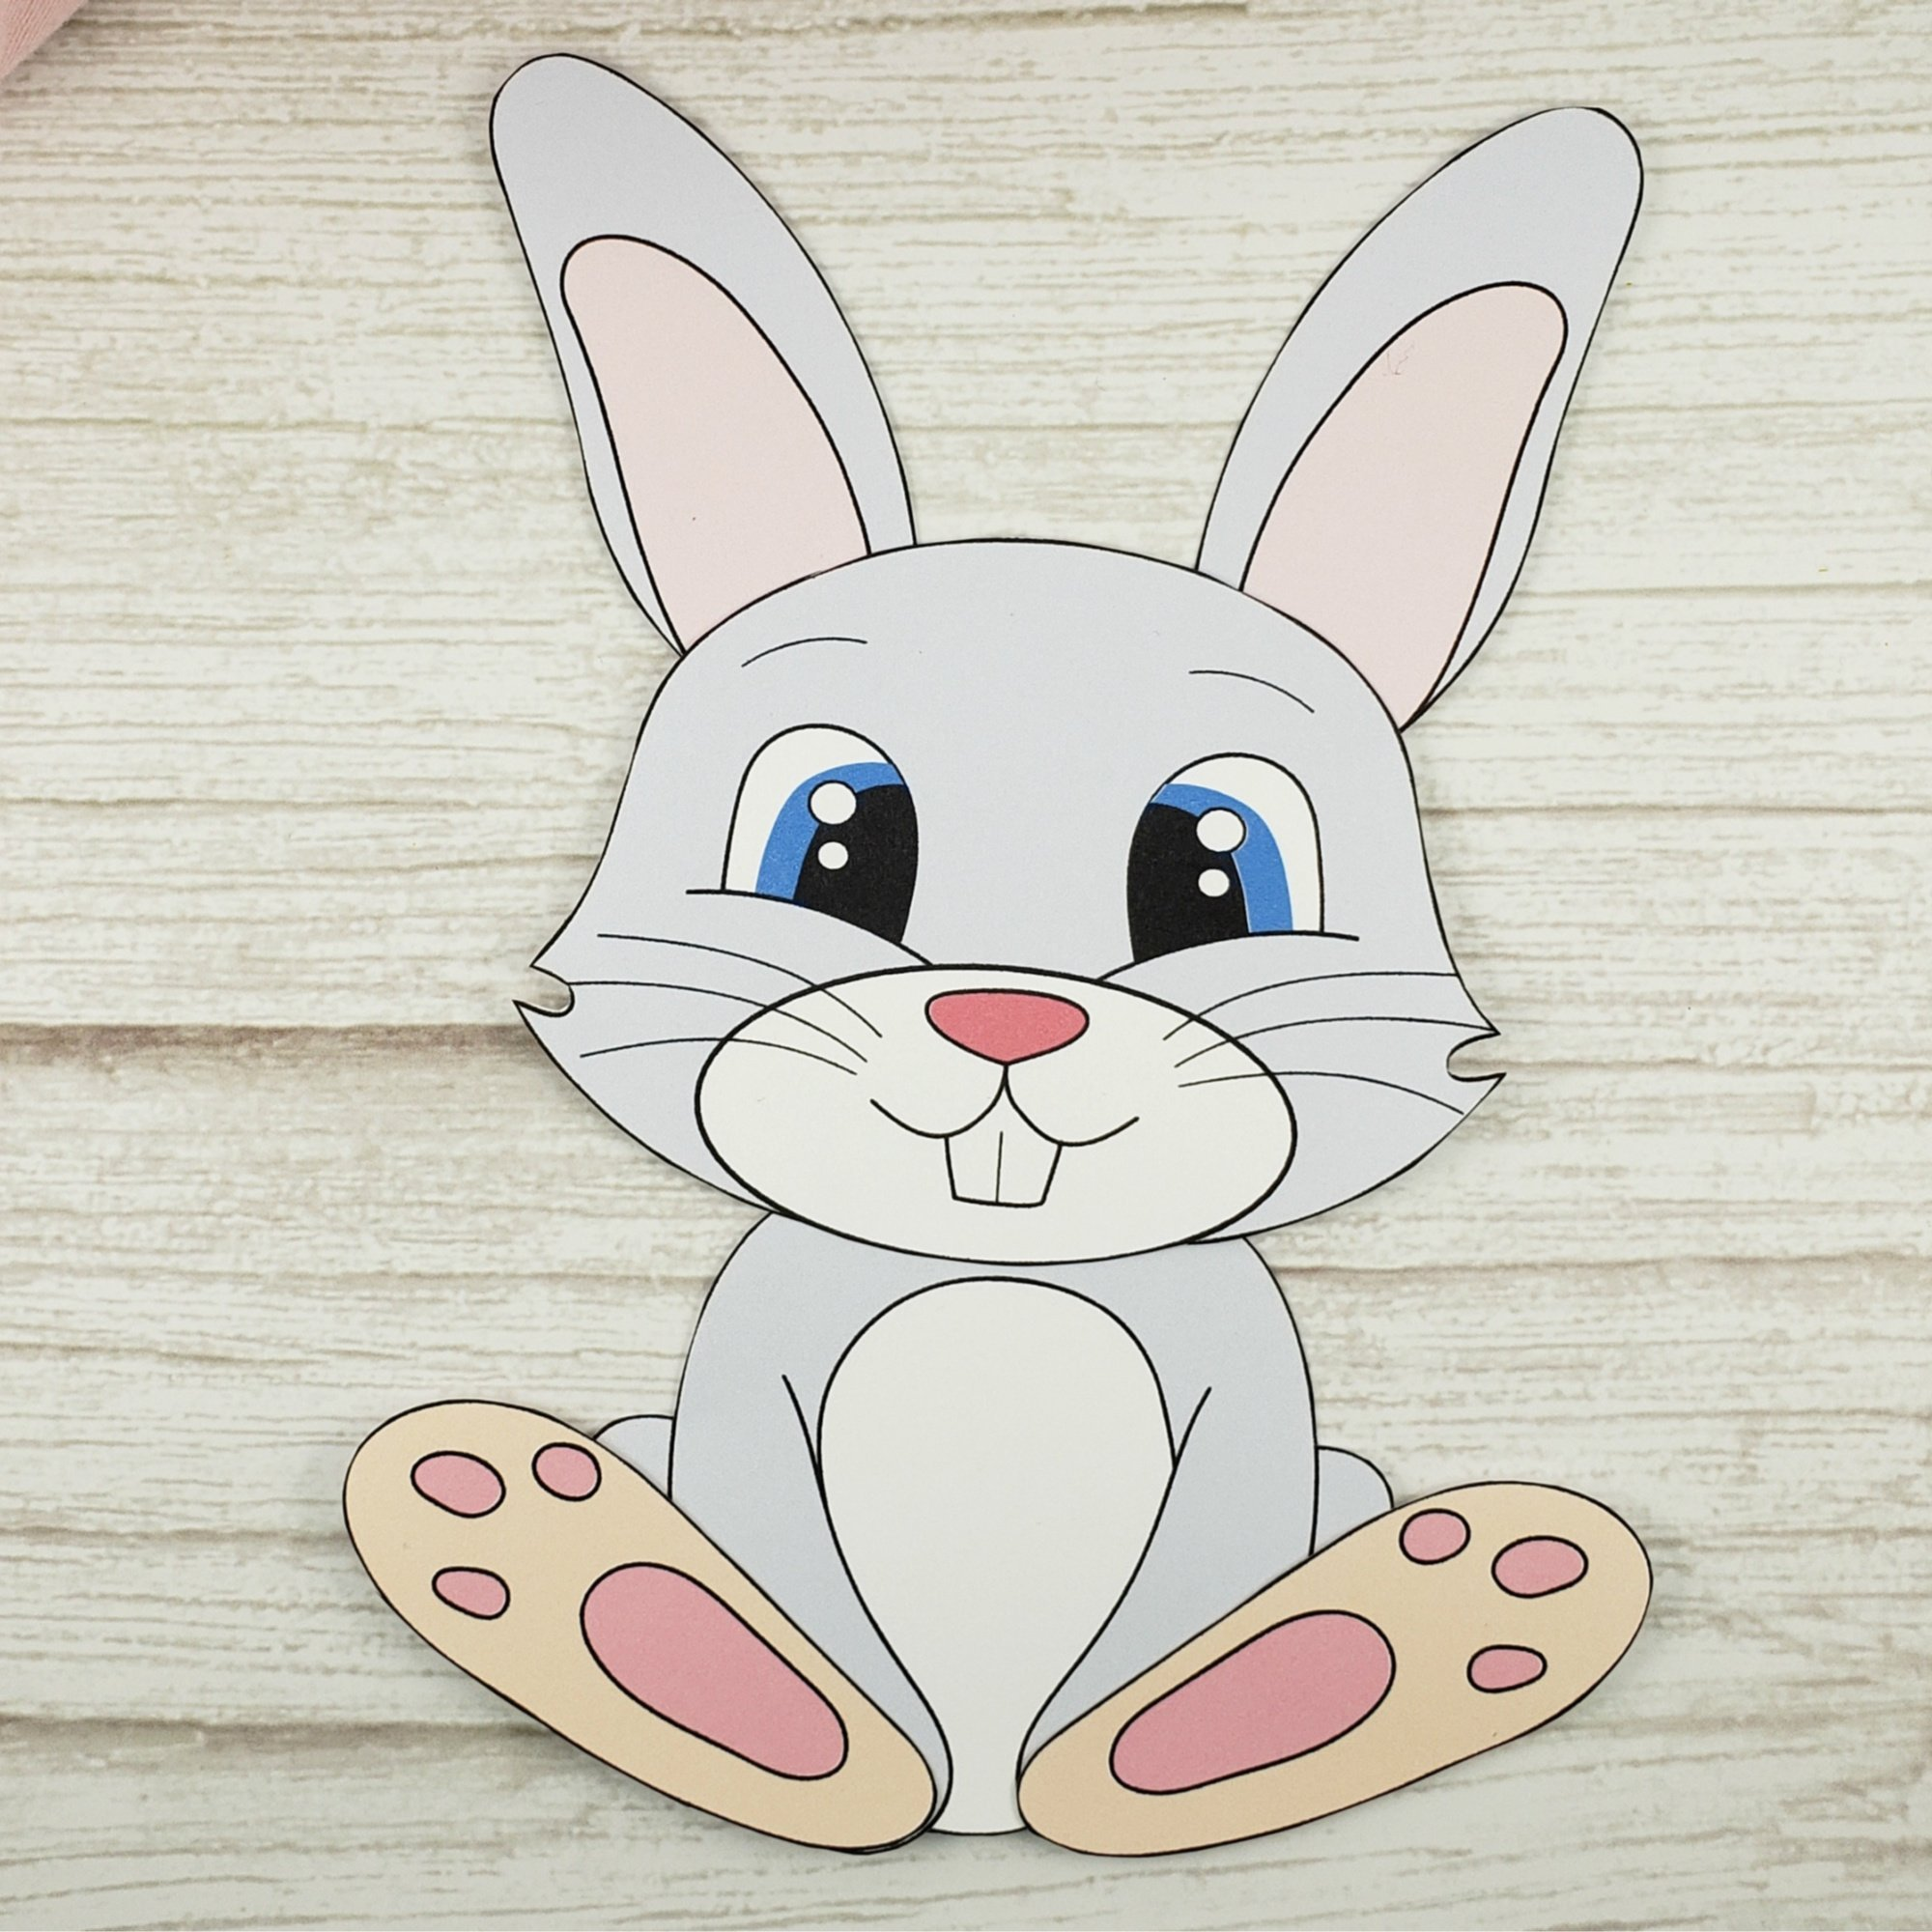 Easy Bunny Rabbit Free Printable Template craft for kids, toddlers and preschoolers